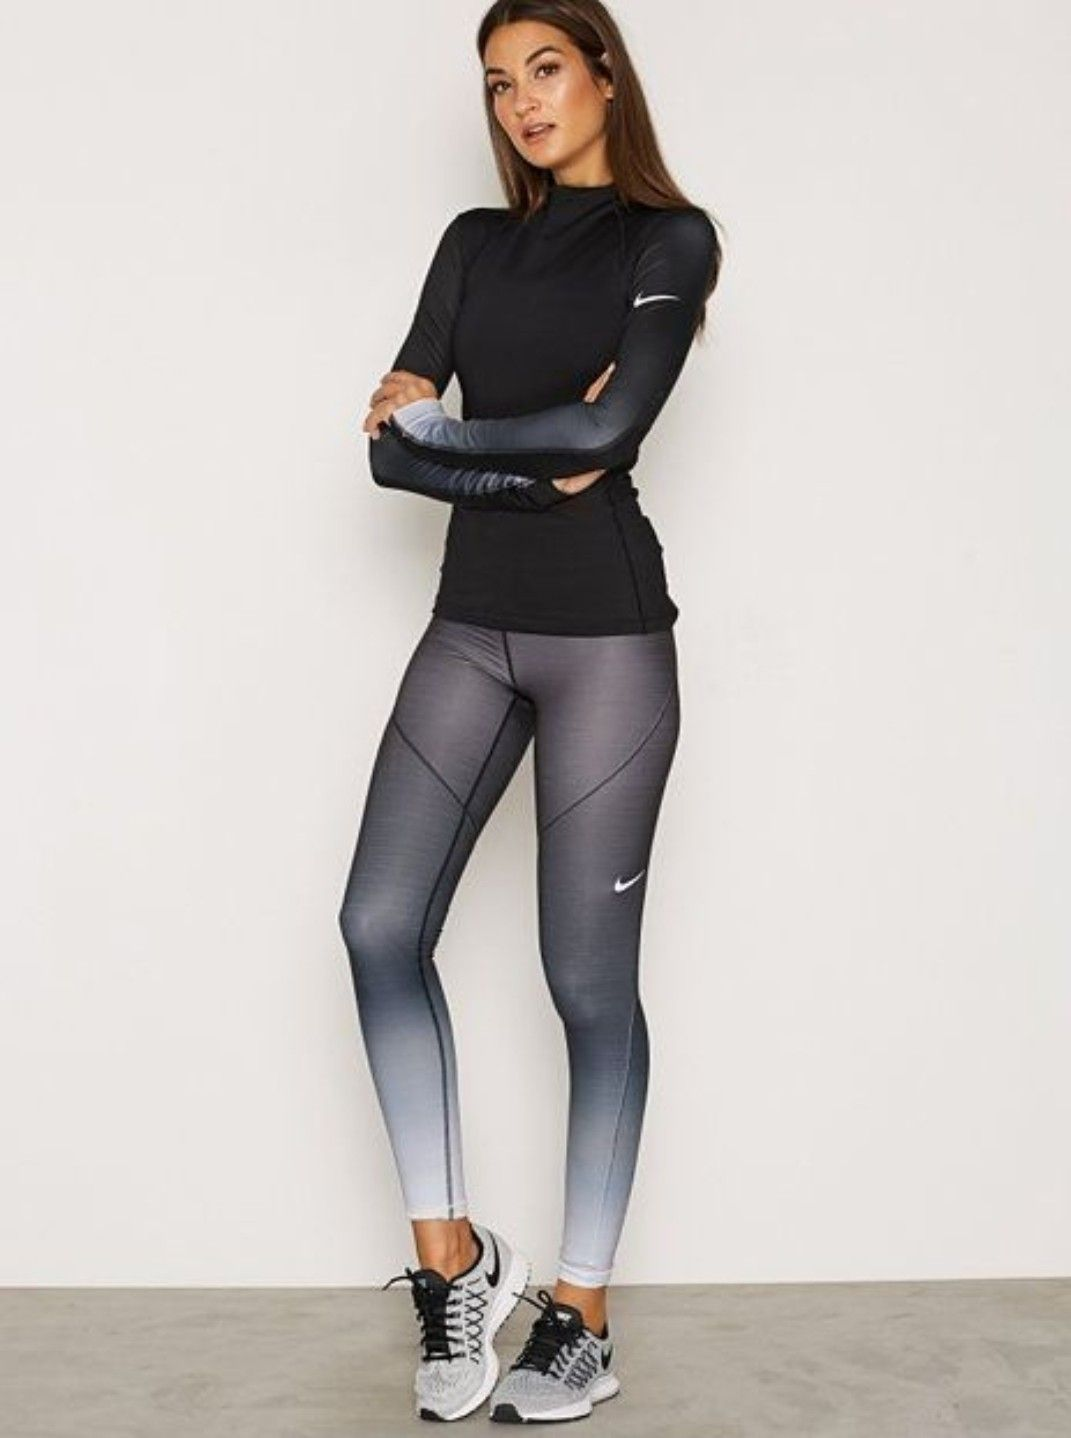 c0b33a1c30704 ... Athletic Gym Comfy Foldover. 25 Workout Outfits That You Can Copy For  Spring. Nike women sportoutfit